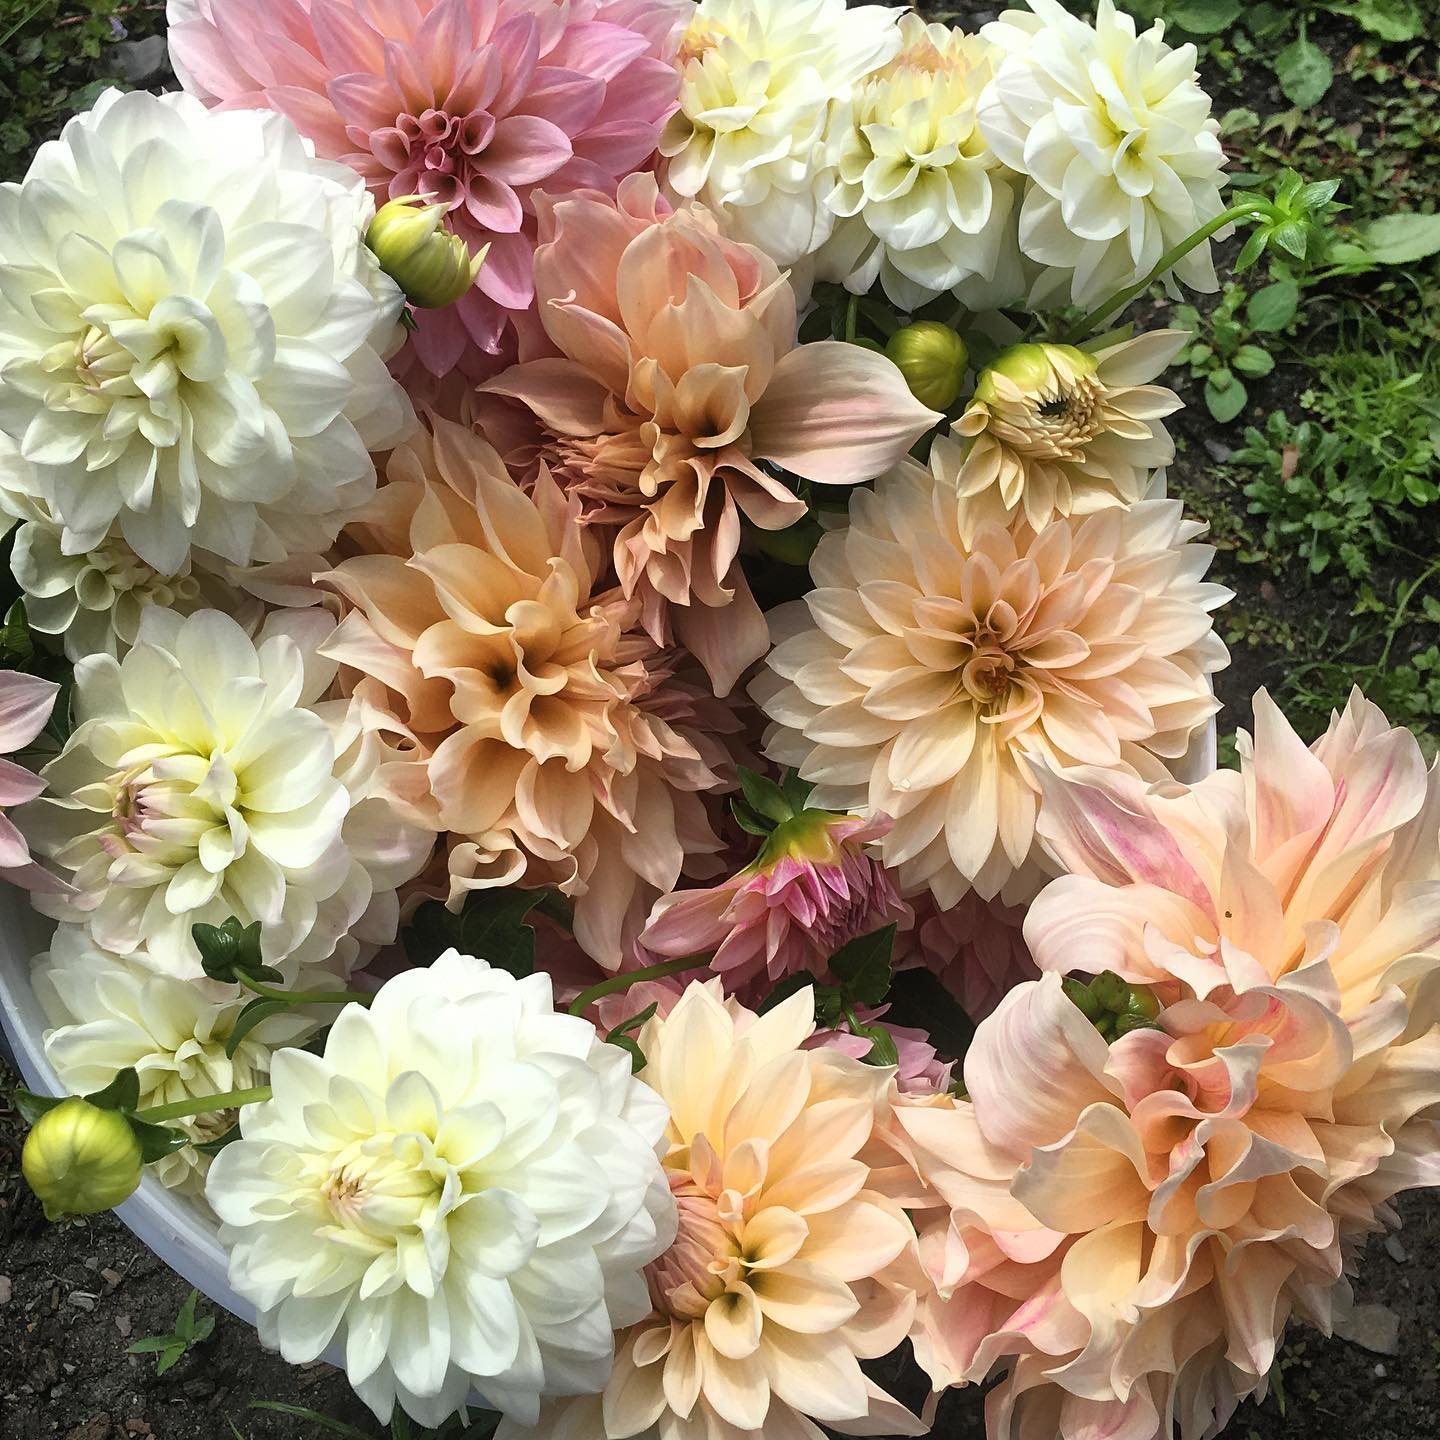 a variety of white, blush, and pink flowers in a bouquet